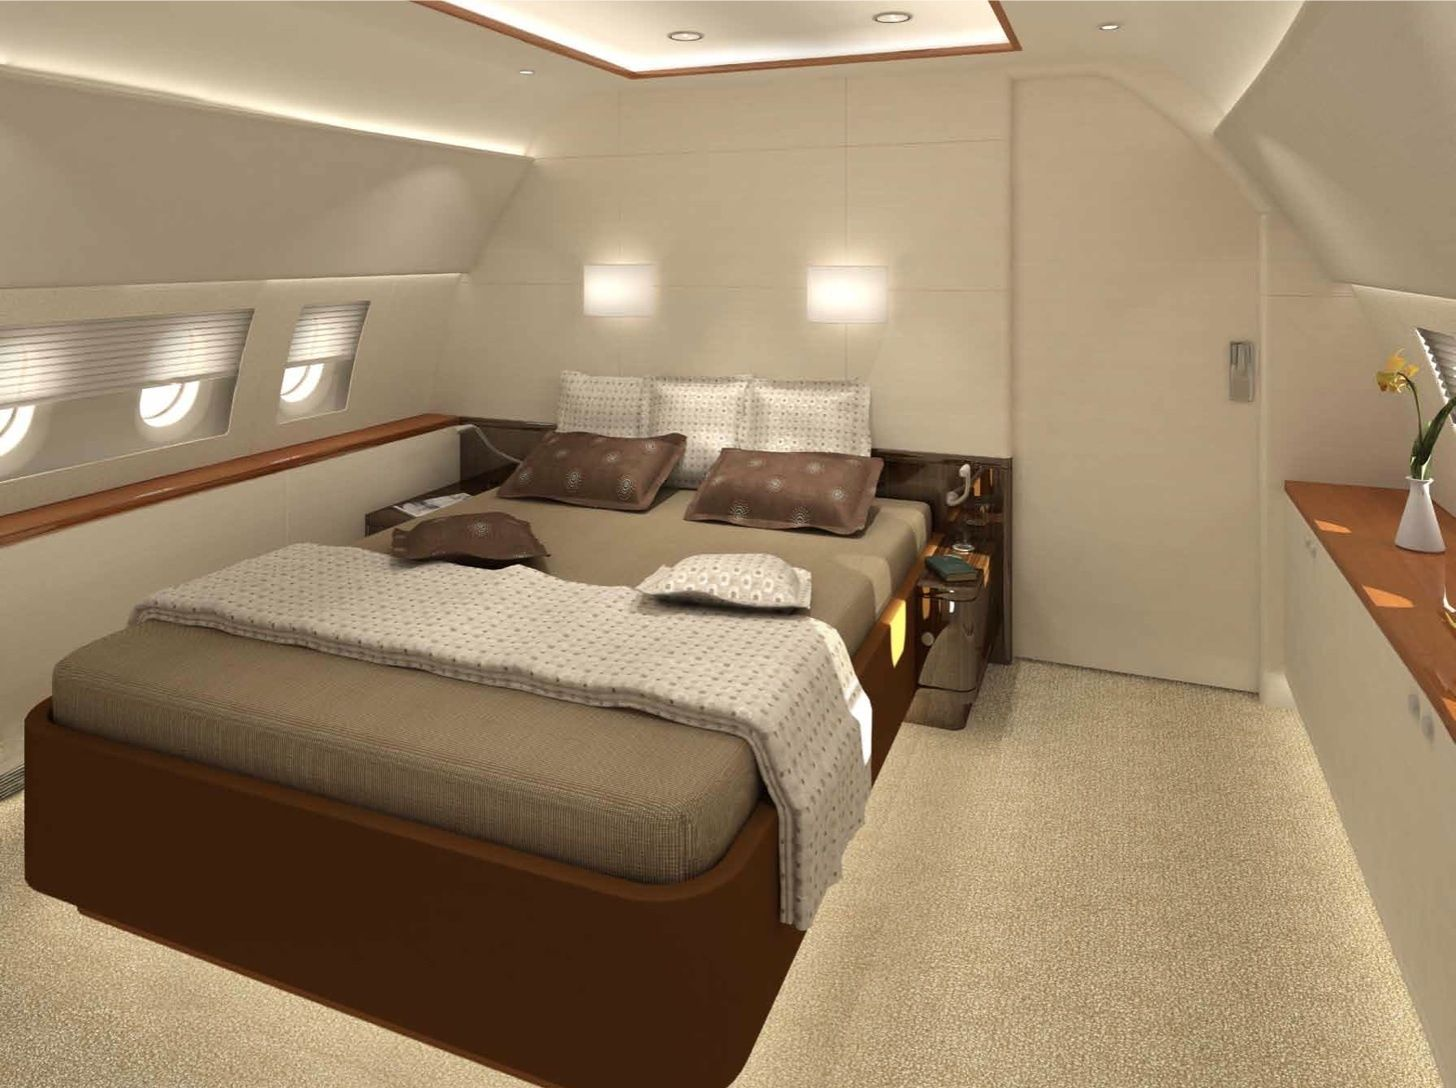 Luxurious Private Jet Interior Design Providing Comfortable Impression Incredible Wooden Bed Frame With Minimal